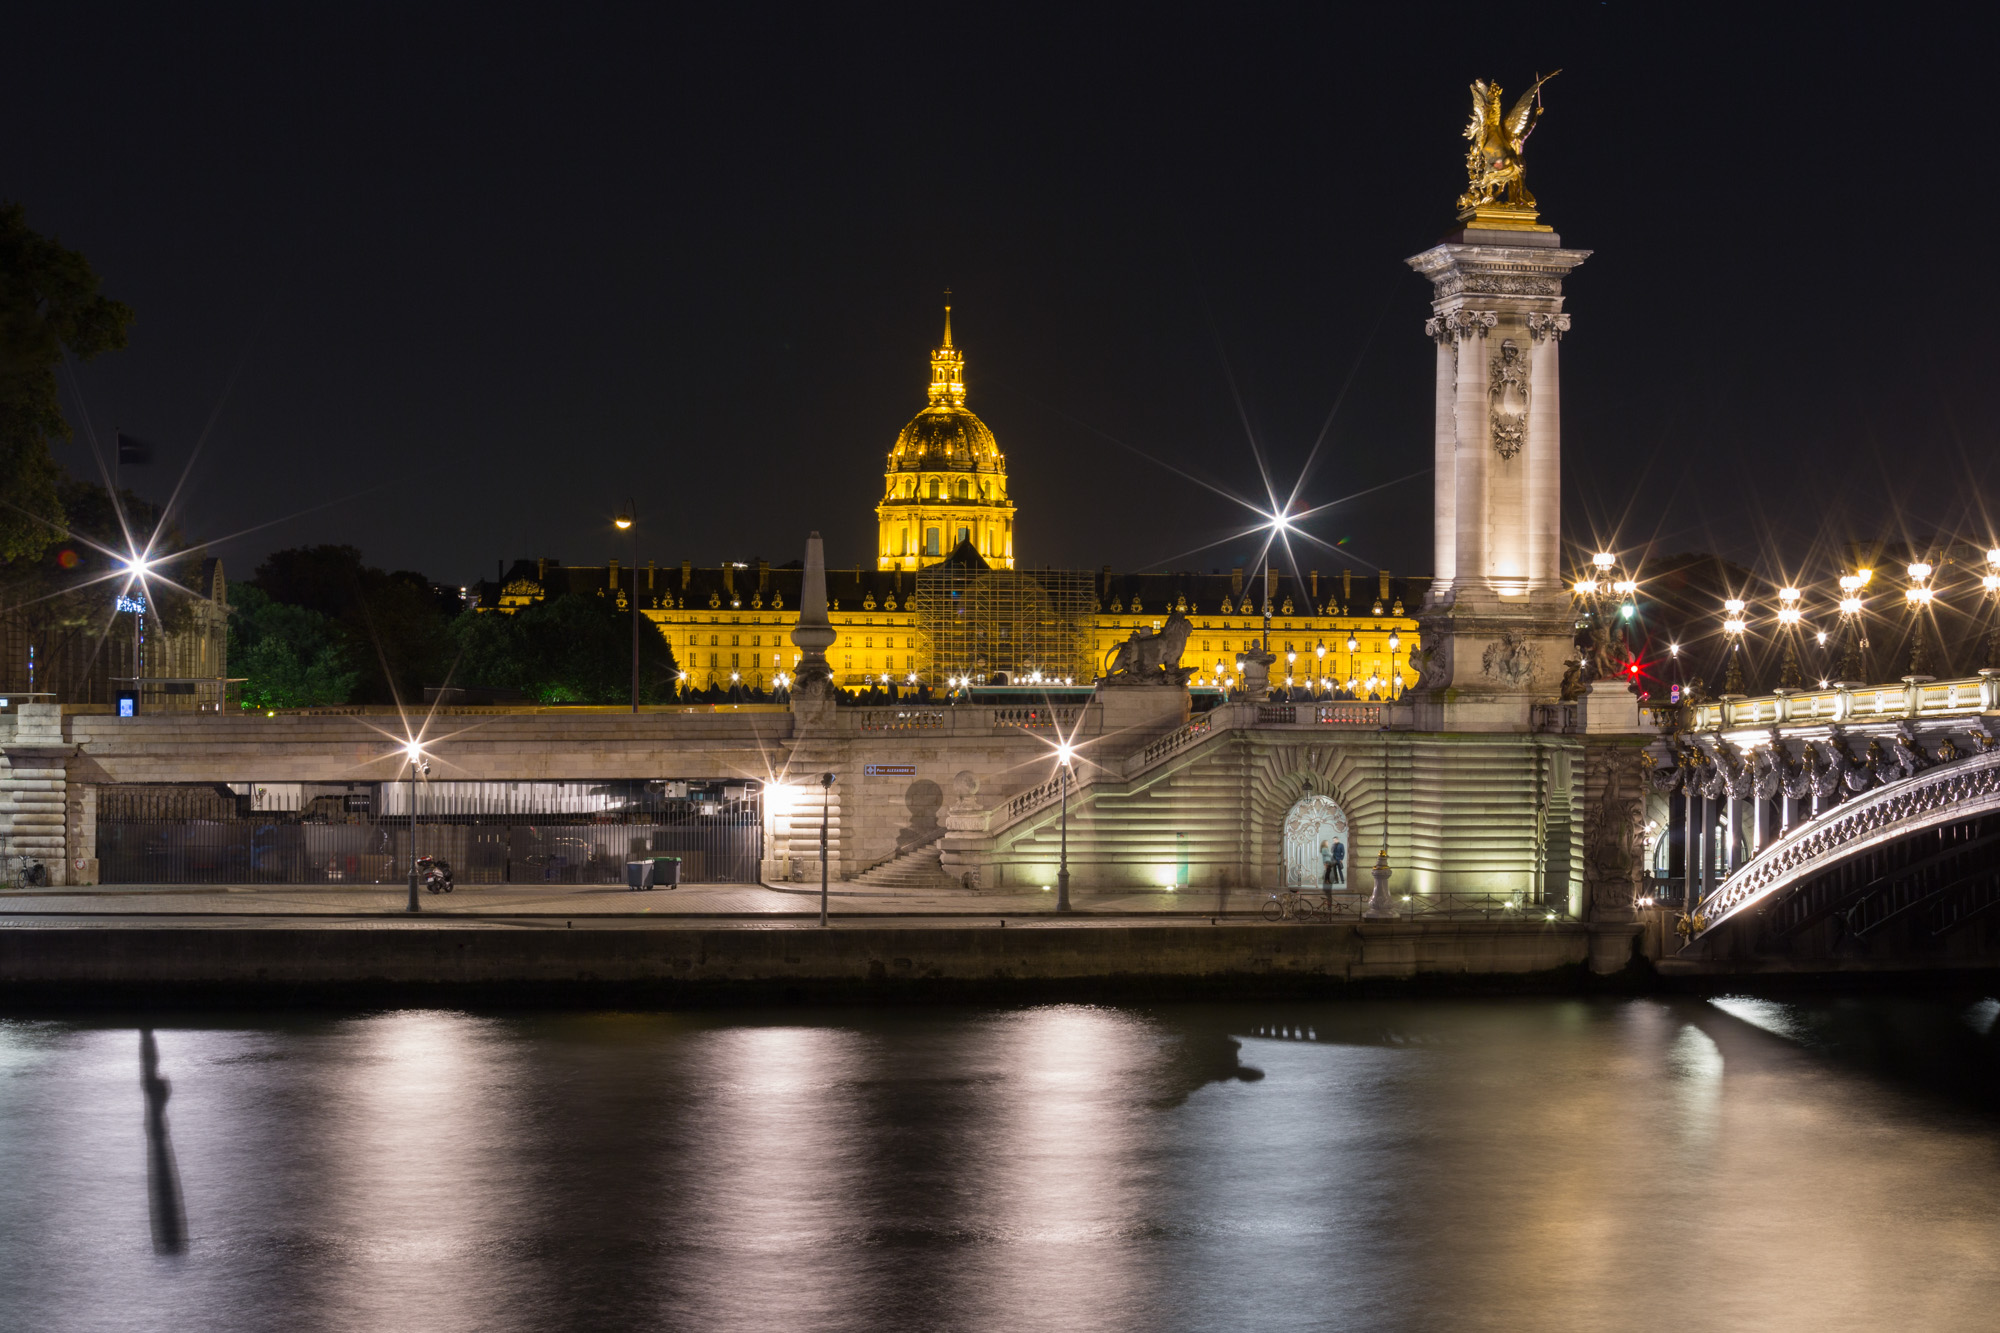 long exposure night photography of the architecture in Paris France viewed from the River Seine